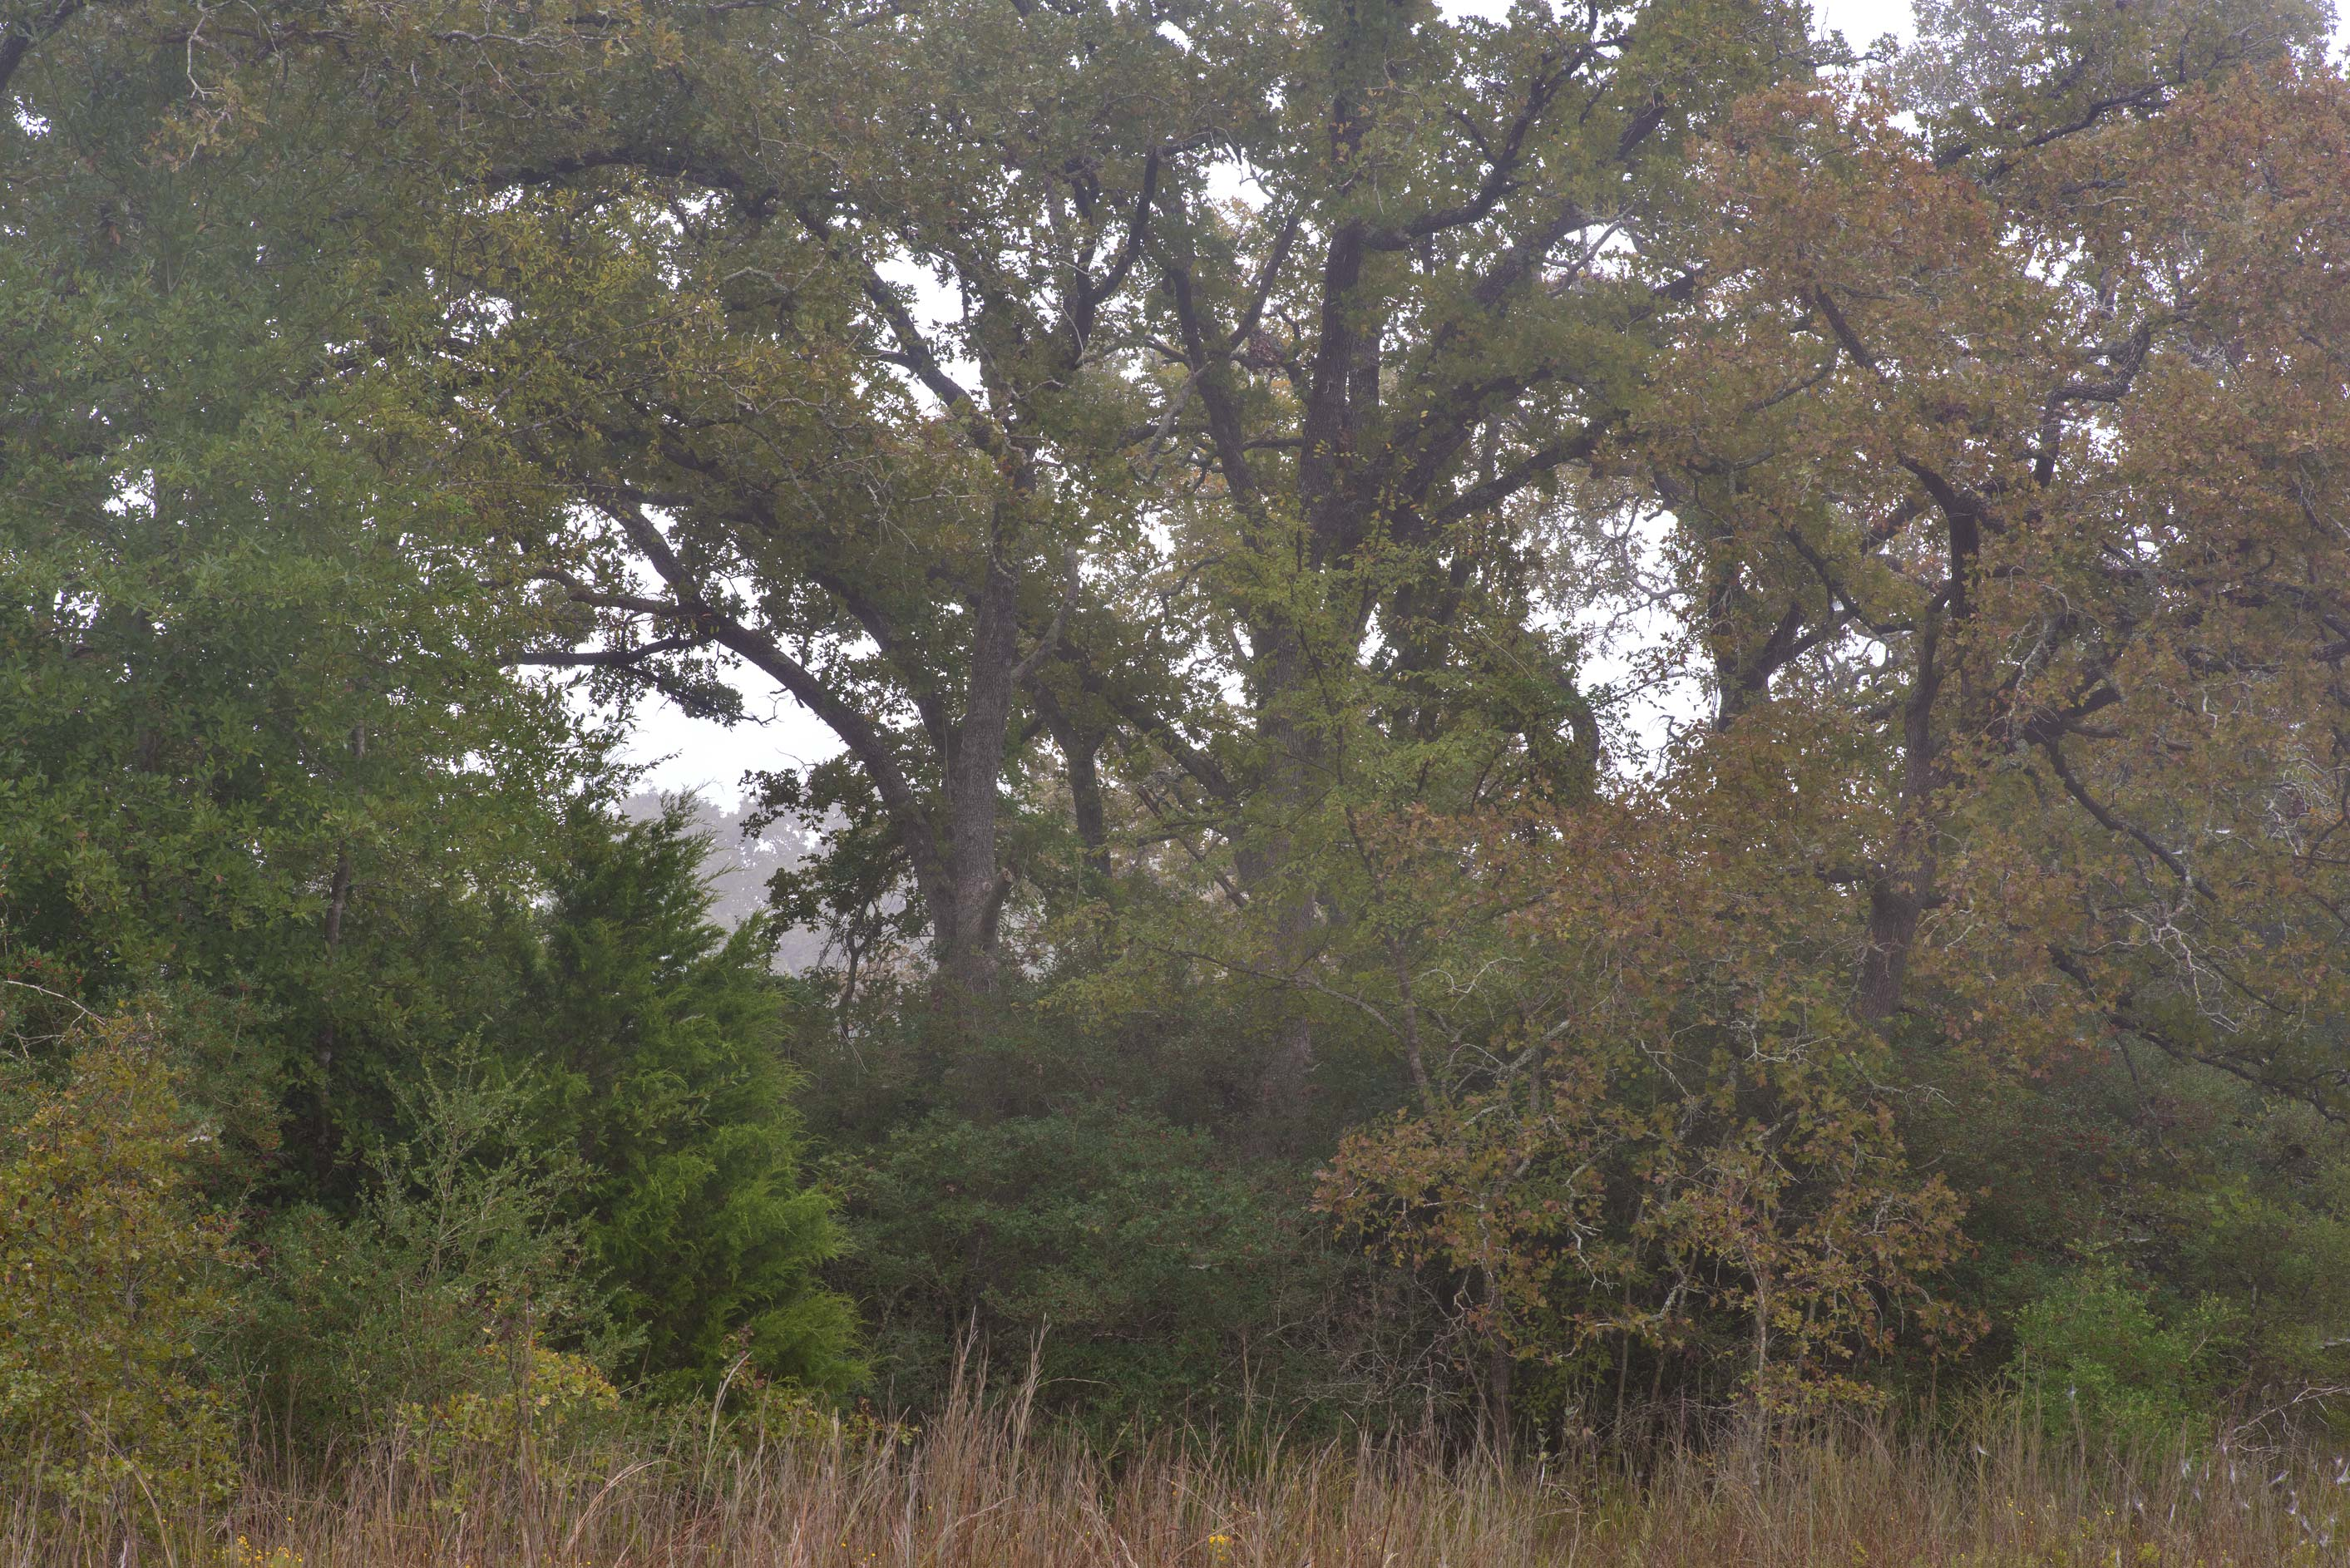 Prairie and oaks in Lick Creek Park. College Station, Texas